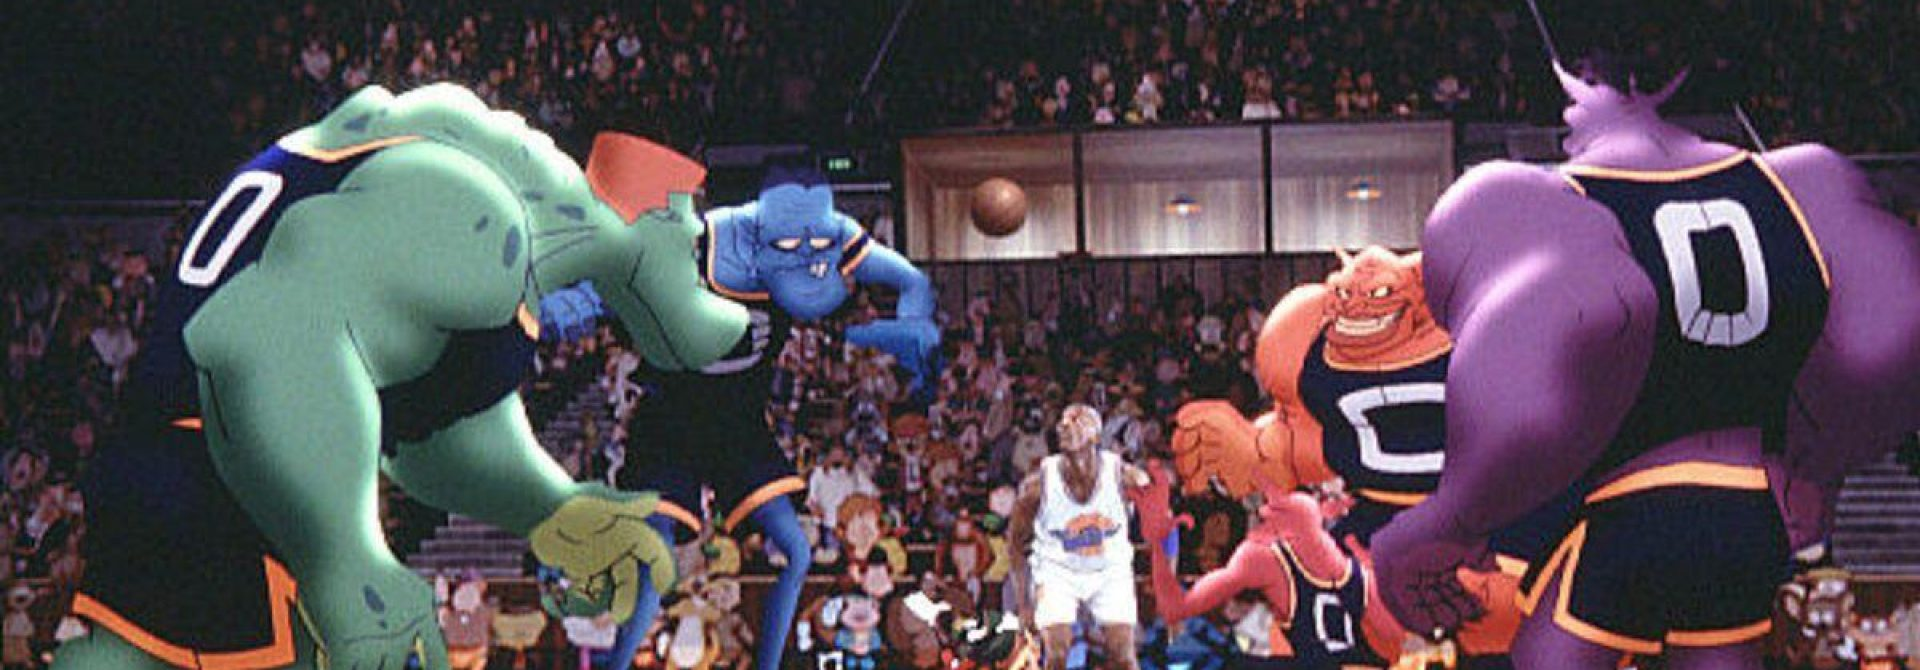 Space Jam 2 Set For July 16, 2021